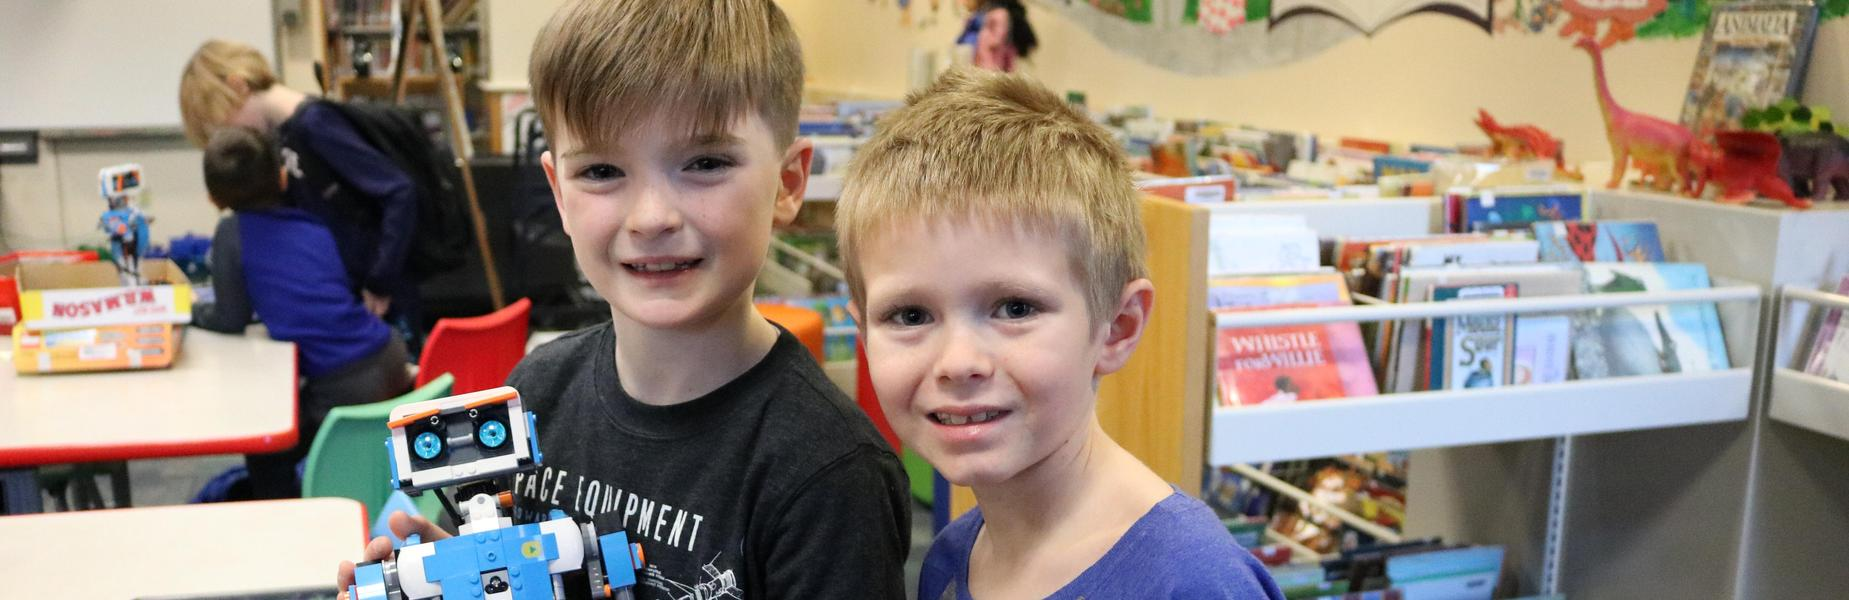 Two Wilson 3rd graders show off the robot they built and programmed during an afterschool STEAM session.